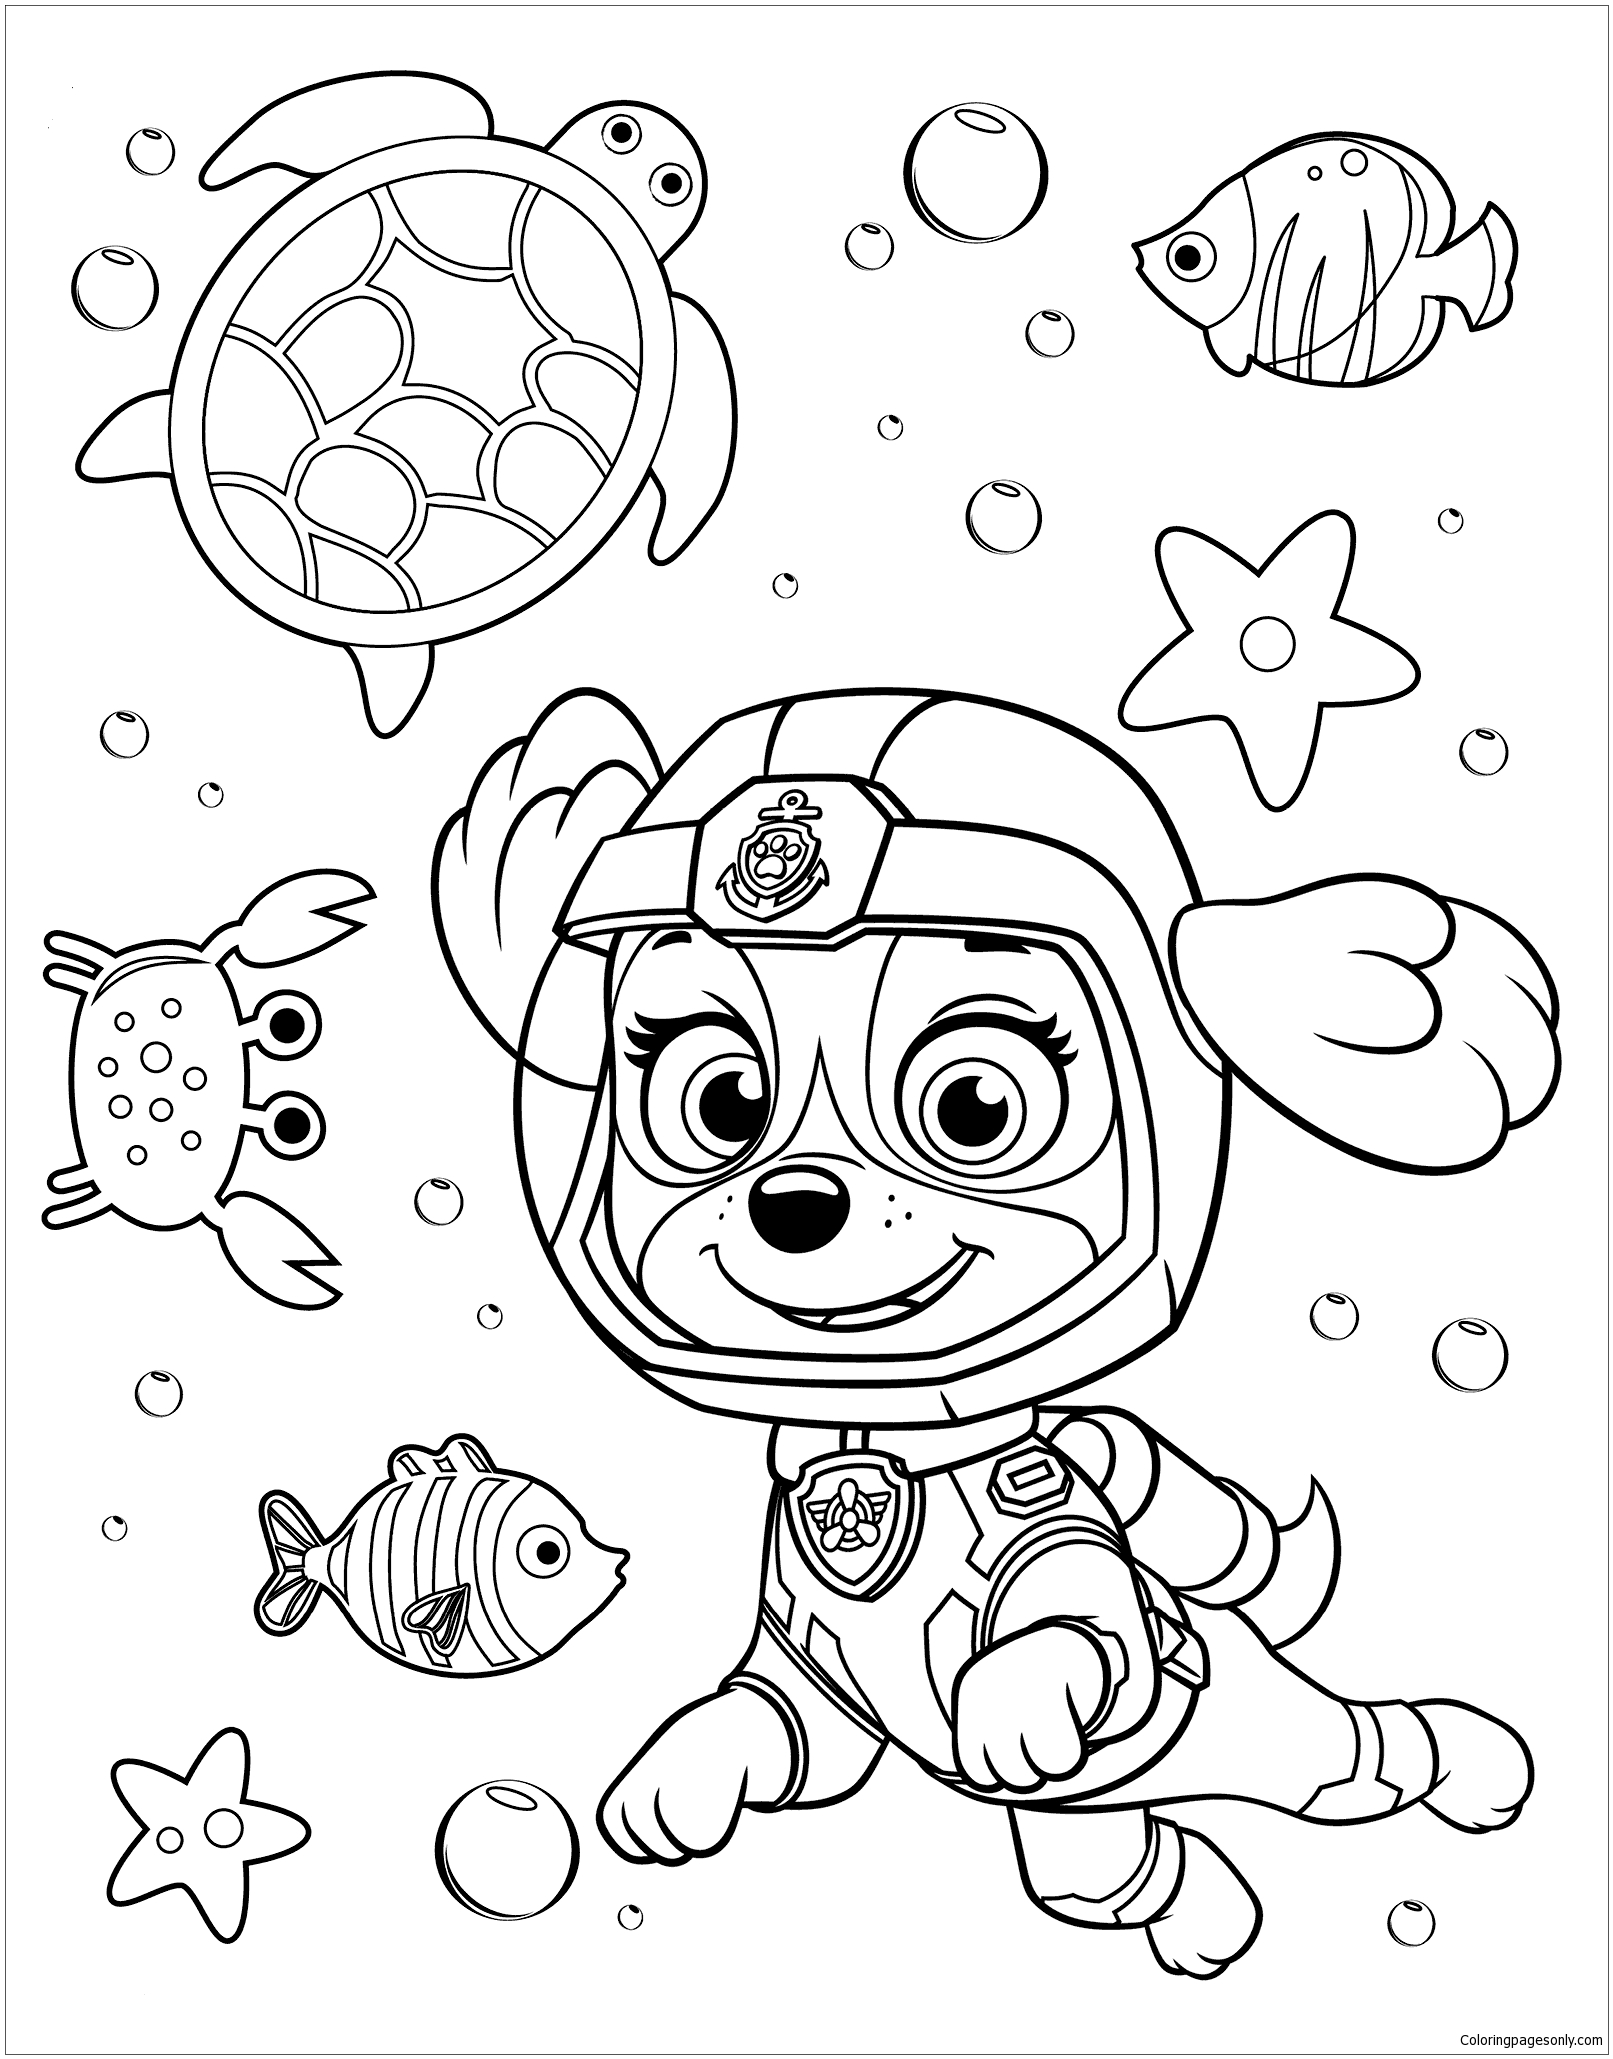 Paw Patrol Rubble Underwater 2 Coloring Page Free